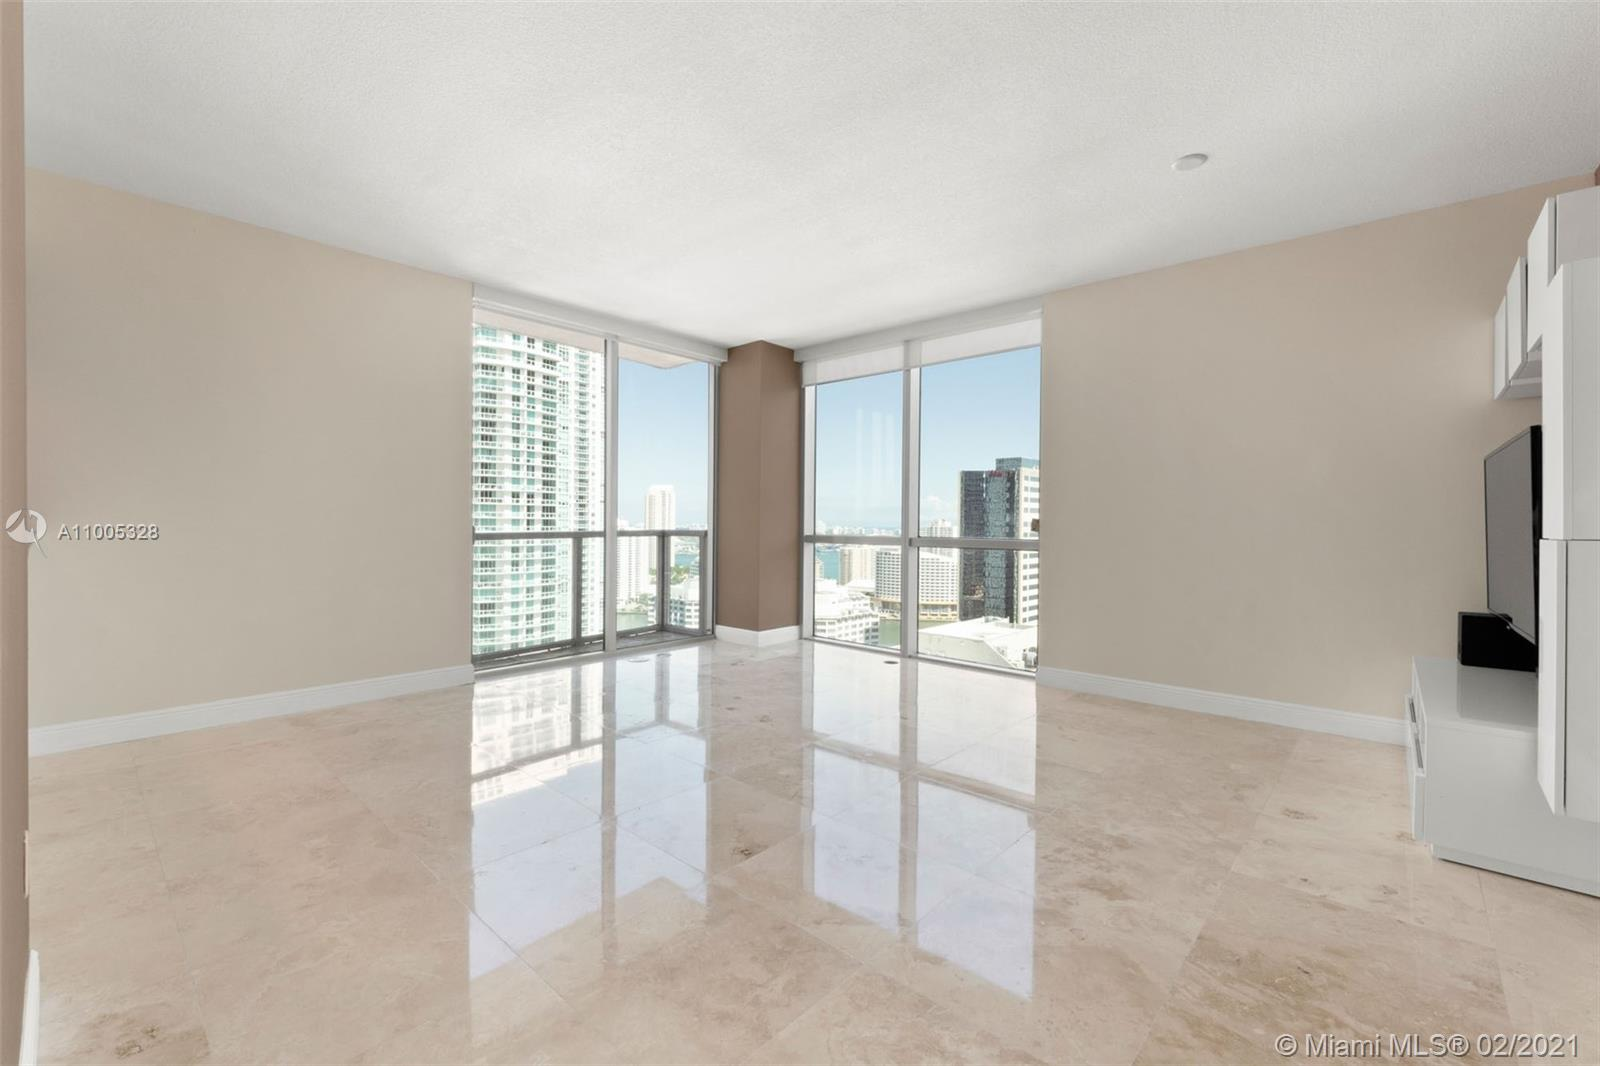 1060 Brickell West Tower #2901 - 1060 Brickell Ave #2901, Miami, FL 33131